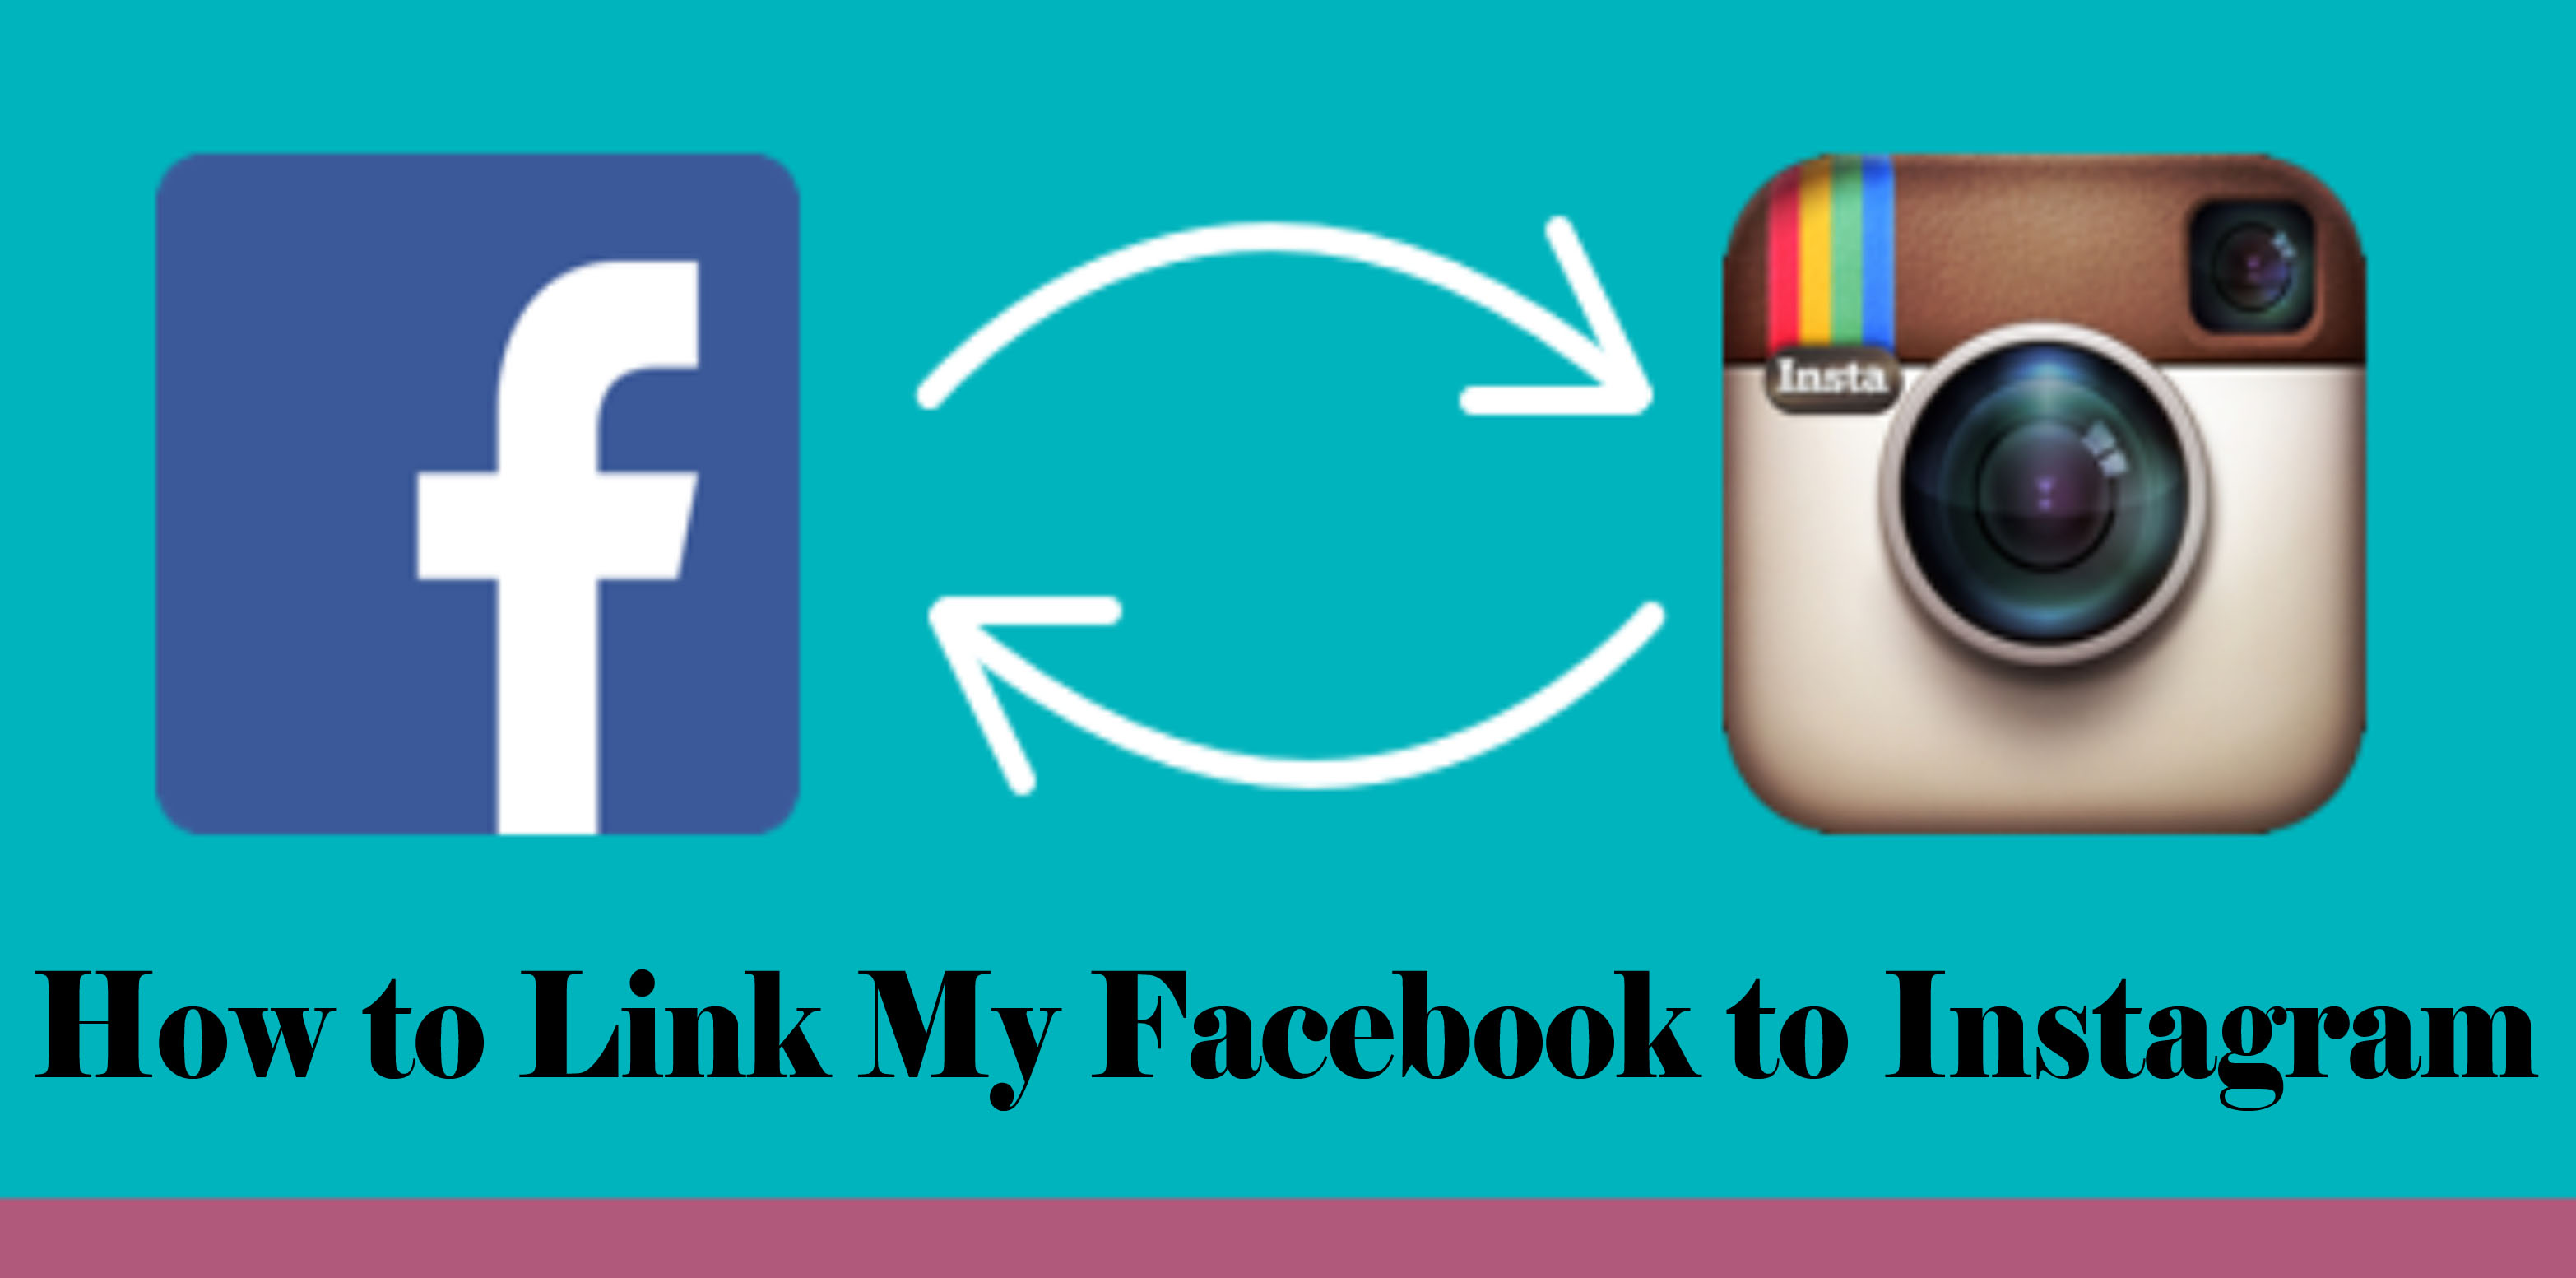 How to Link My Facebook to Instagram